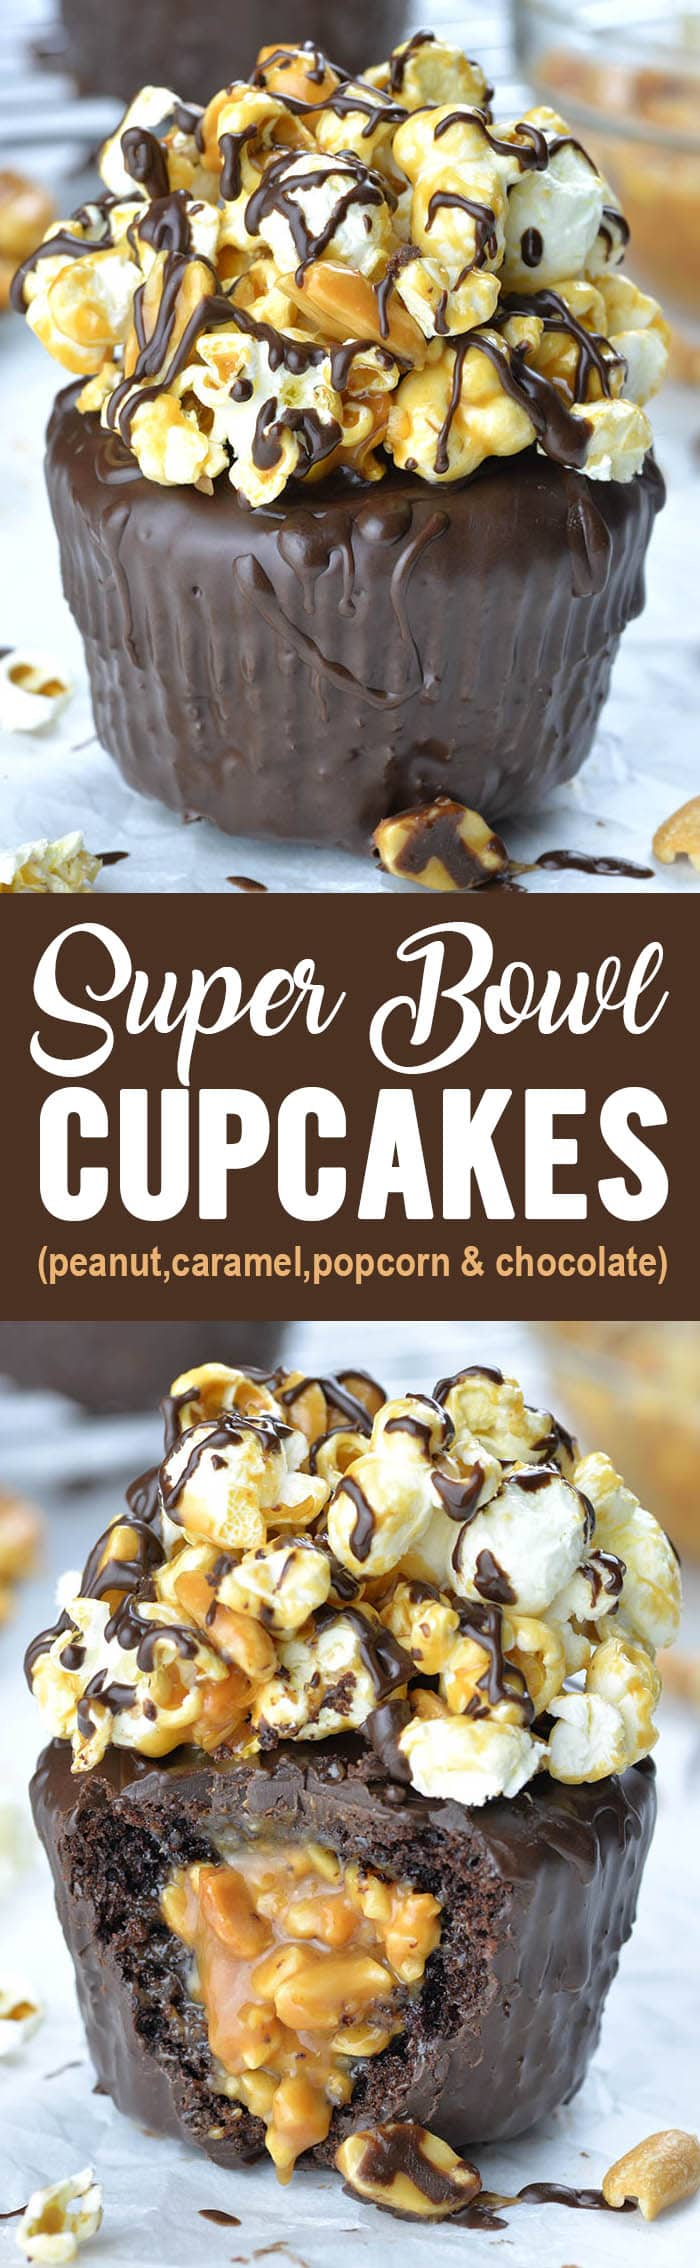 Super Bowl Cupcakes are better than a touchdown!!! If you are hosting Super Bowl party, you'll need delicious dessert for the Big Game!